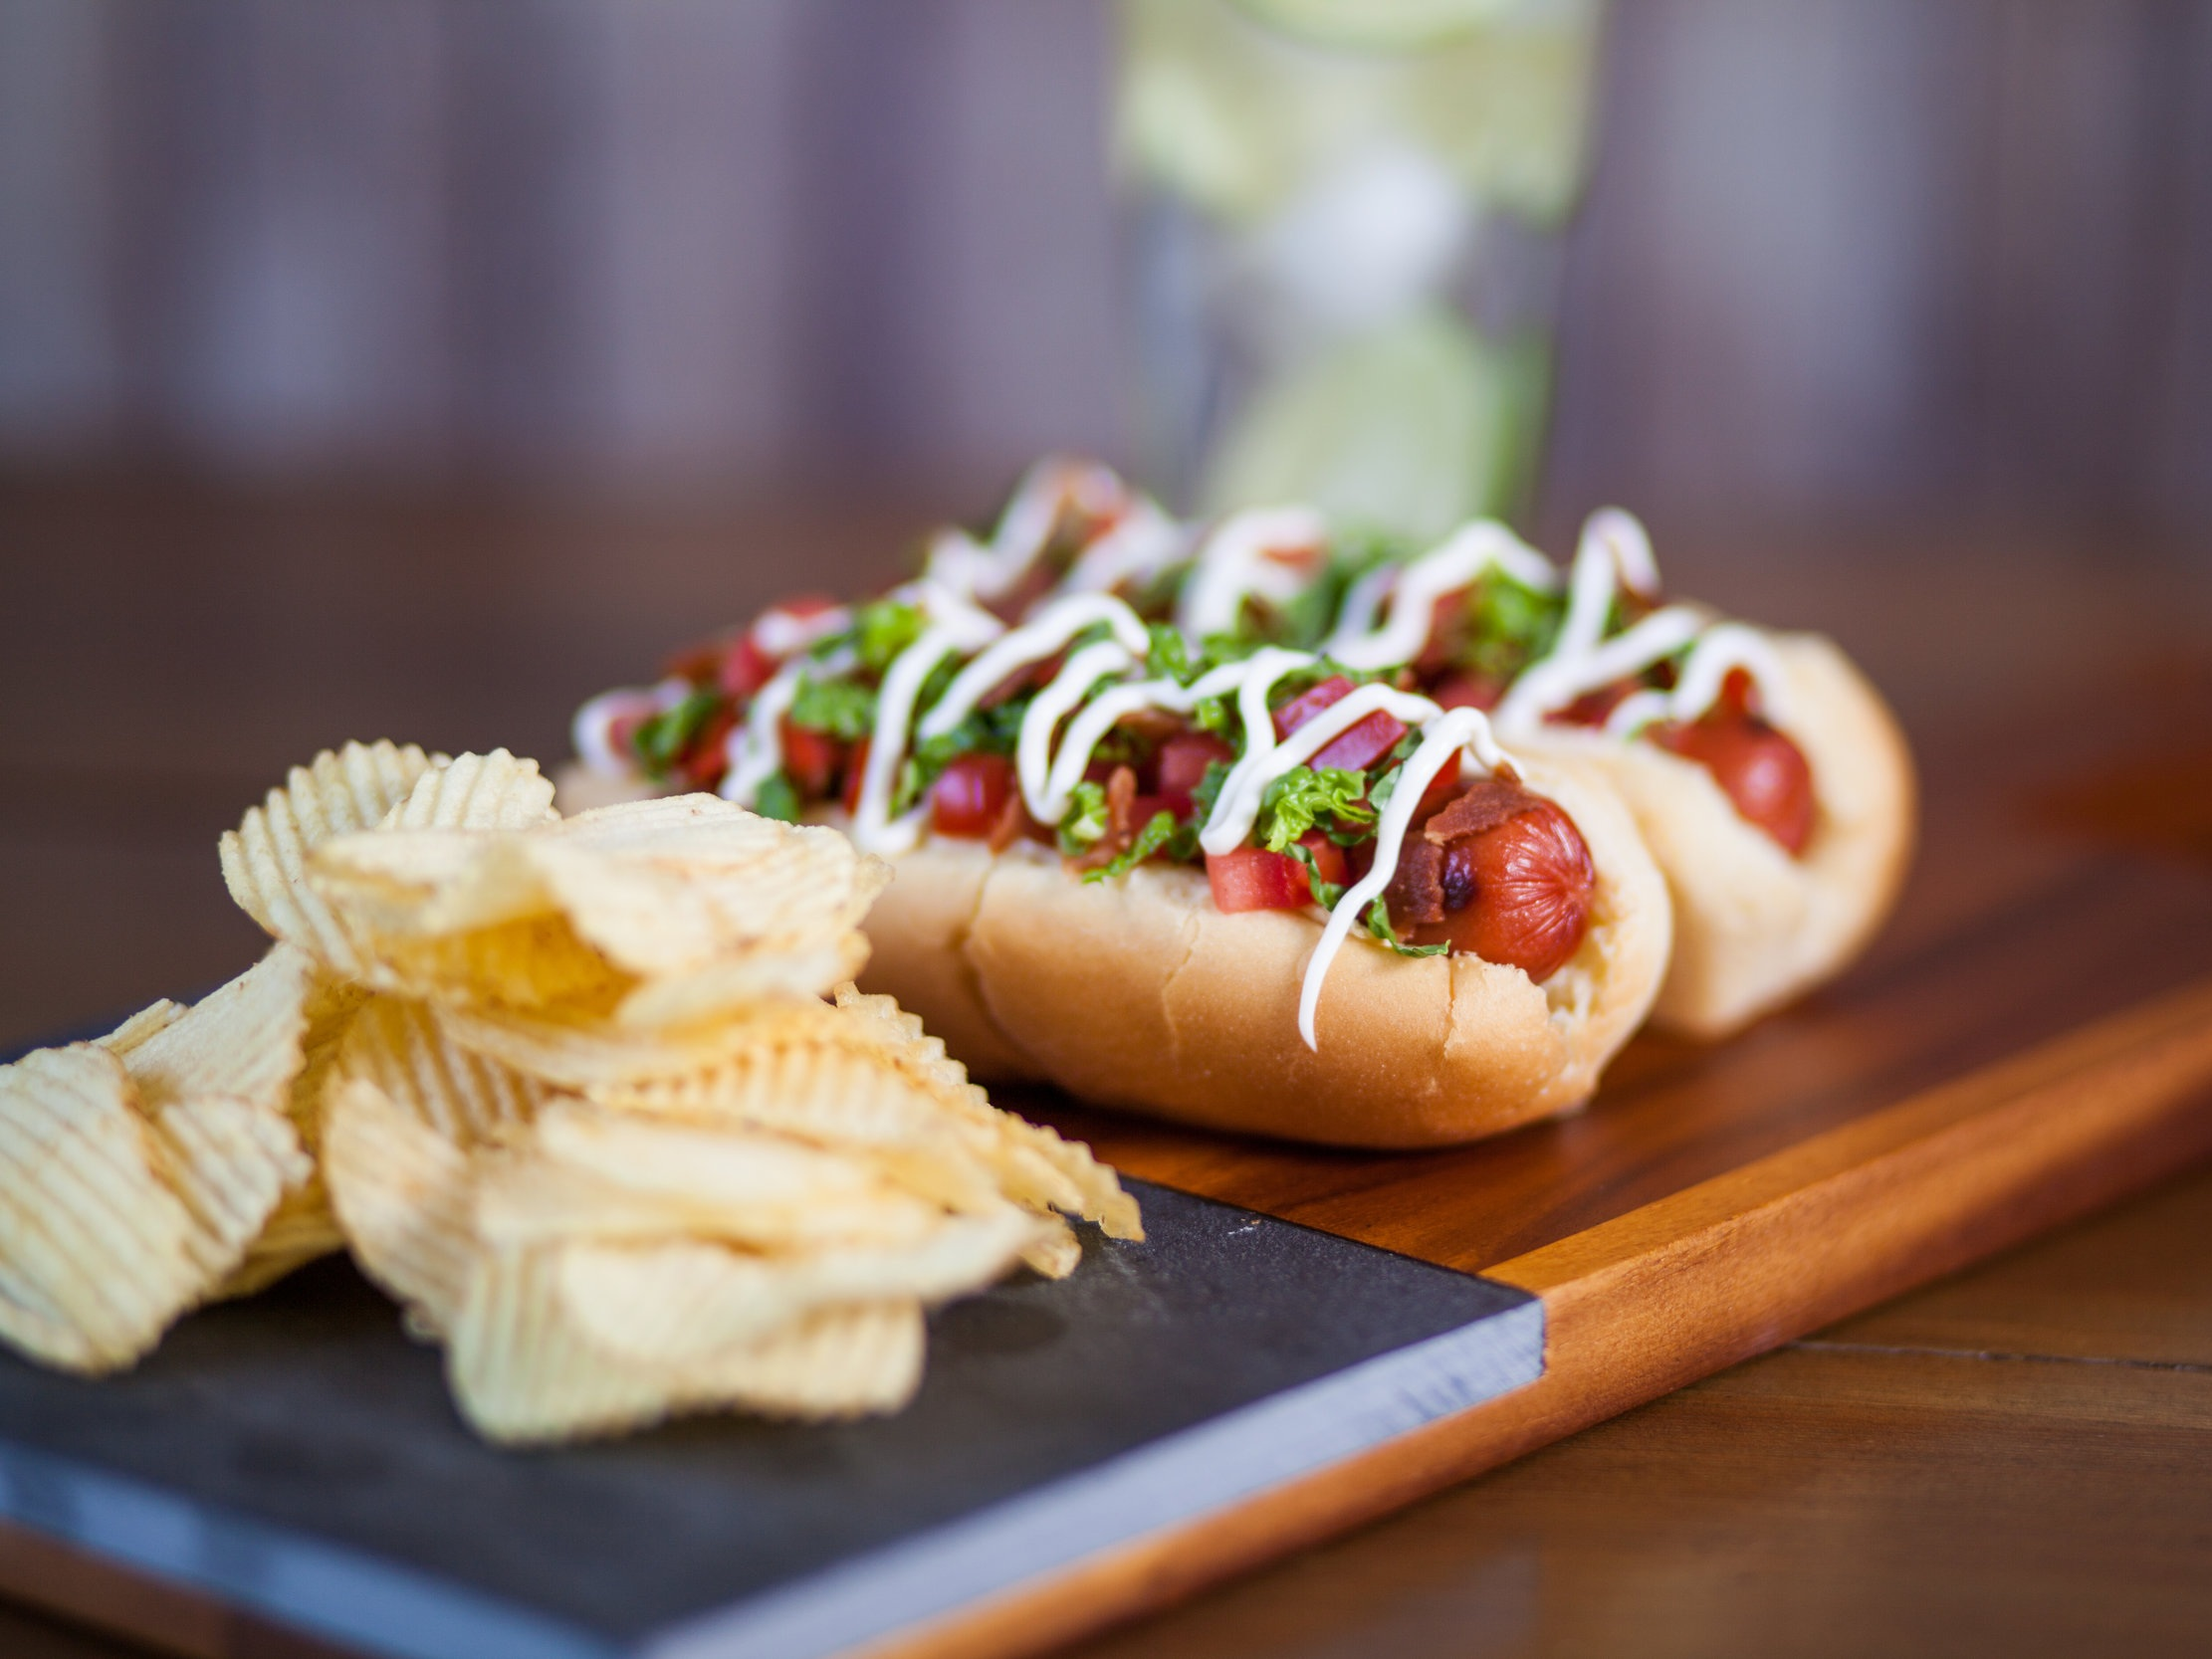 BLT Hot Dog - Sometimes it's hard work to choose between a sandwich and a hot dog. Why choose? This BLT Hot Dog incorporates the best parts of a BLT with a hot dog for a truly satisfying experience. On our Hearth White Hot Dog buns layer bacon, chopped tomatoes, lettuce and mayonnaise and relax!